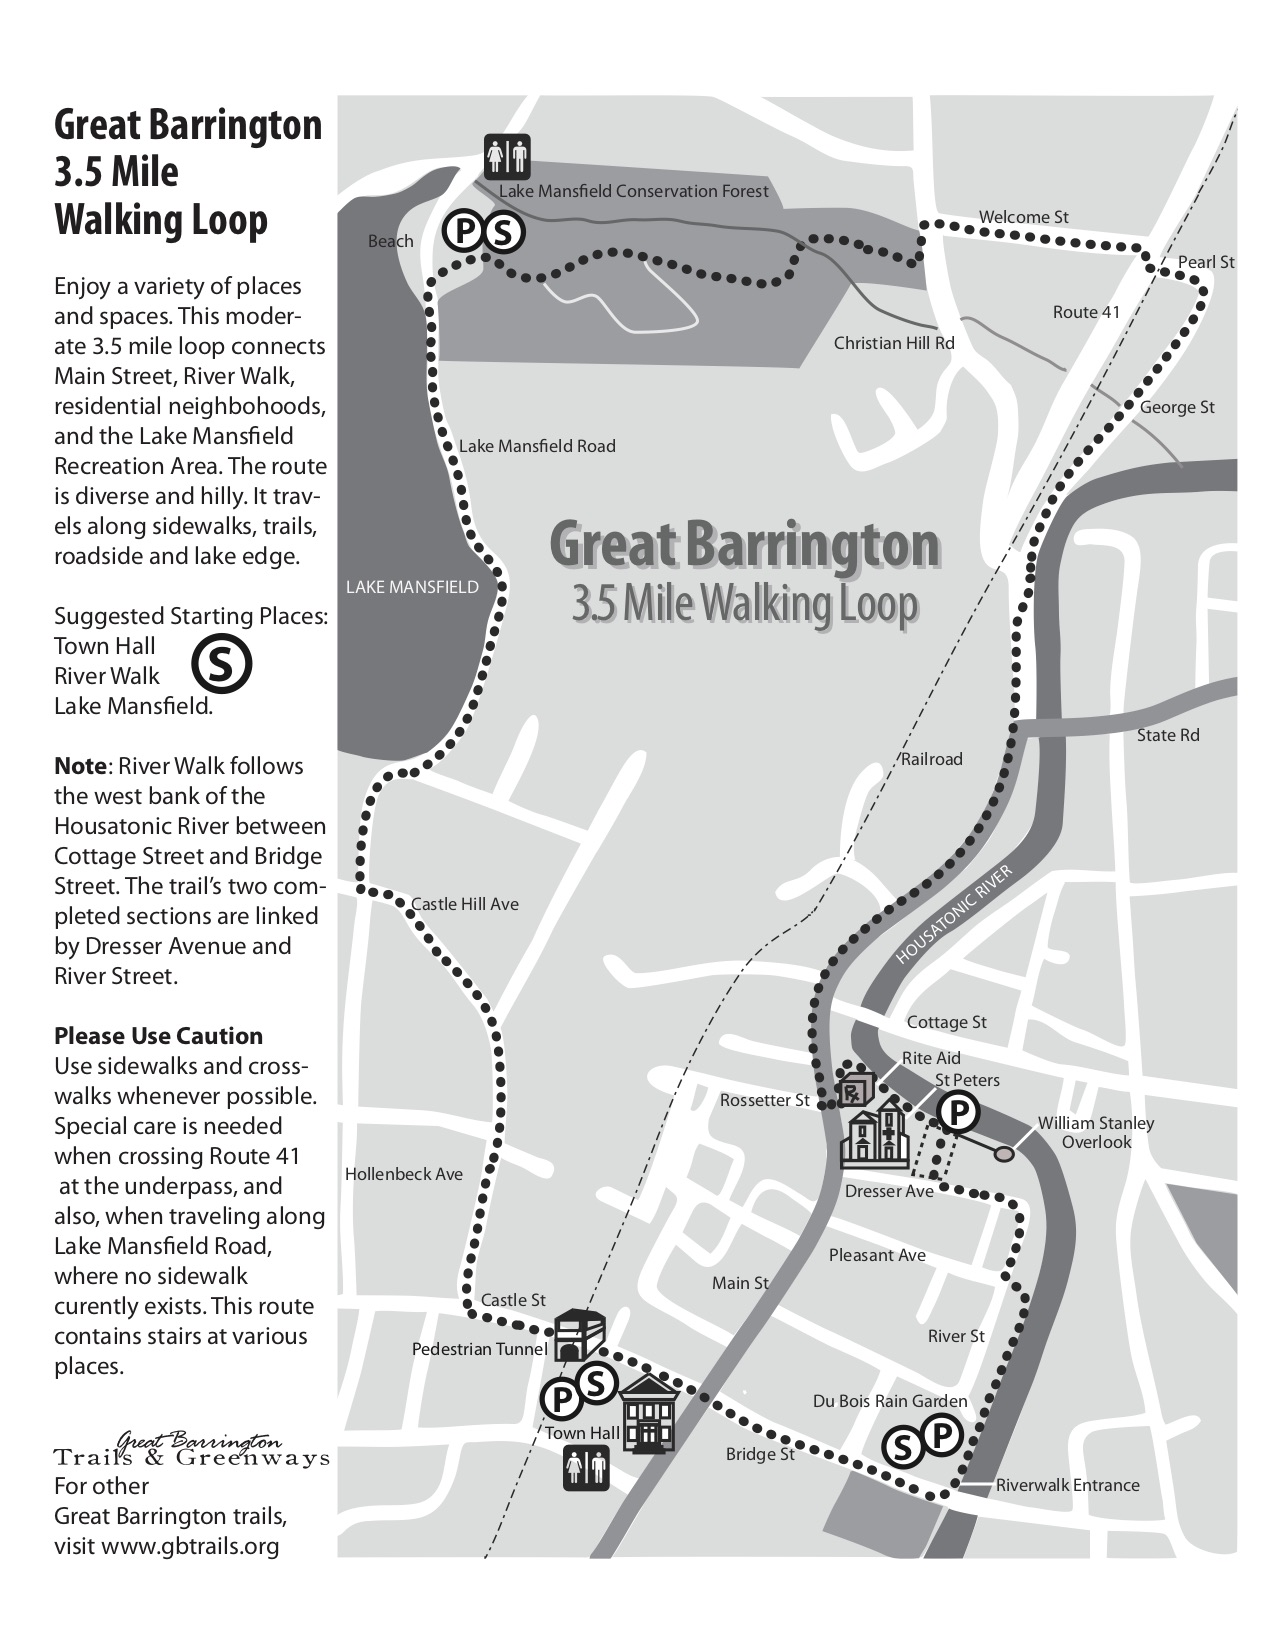 Great Barrington Walking Loop trail map